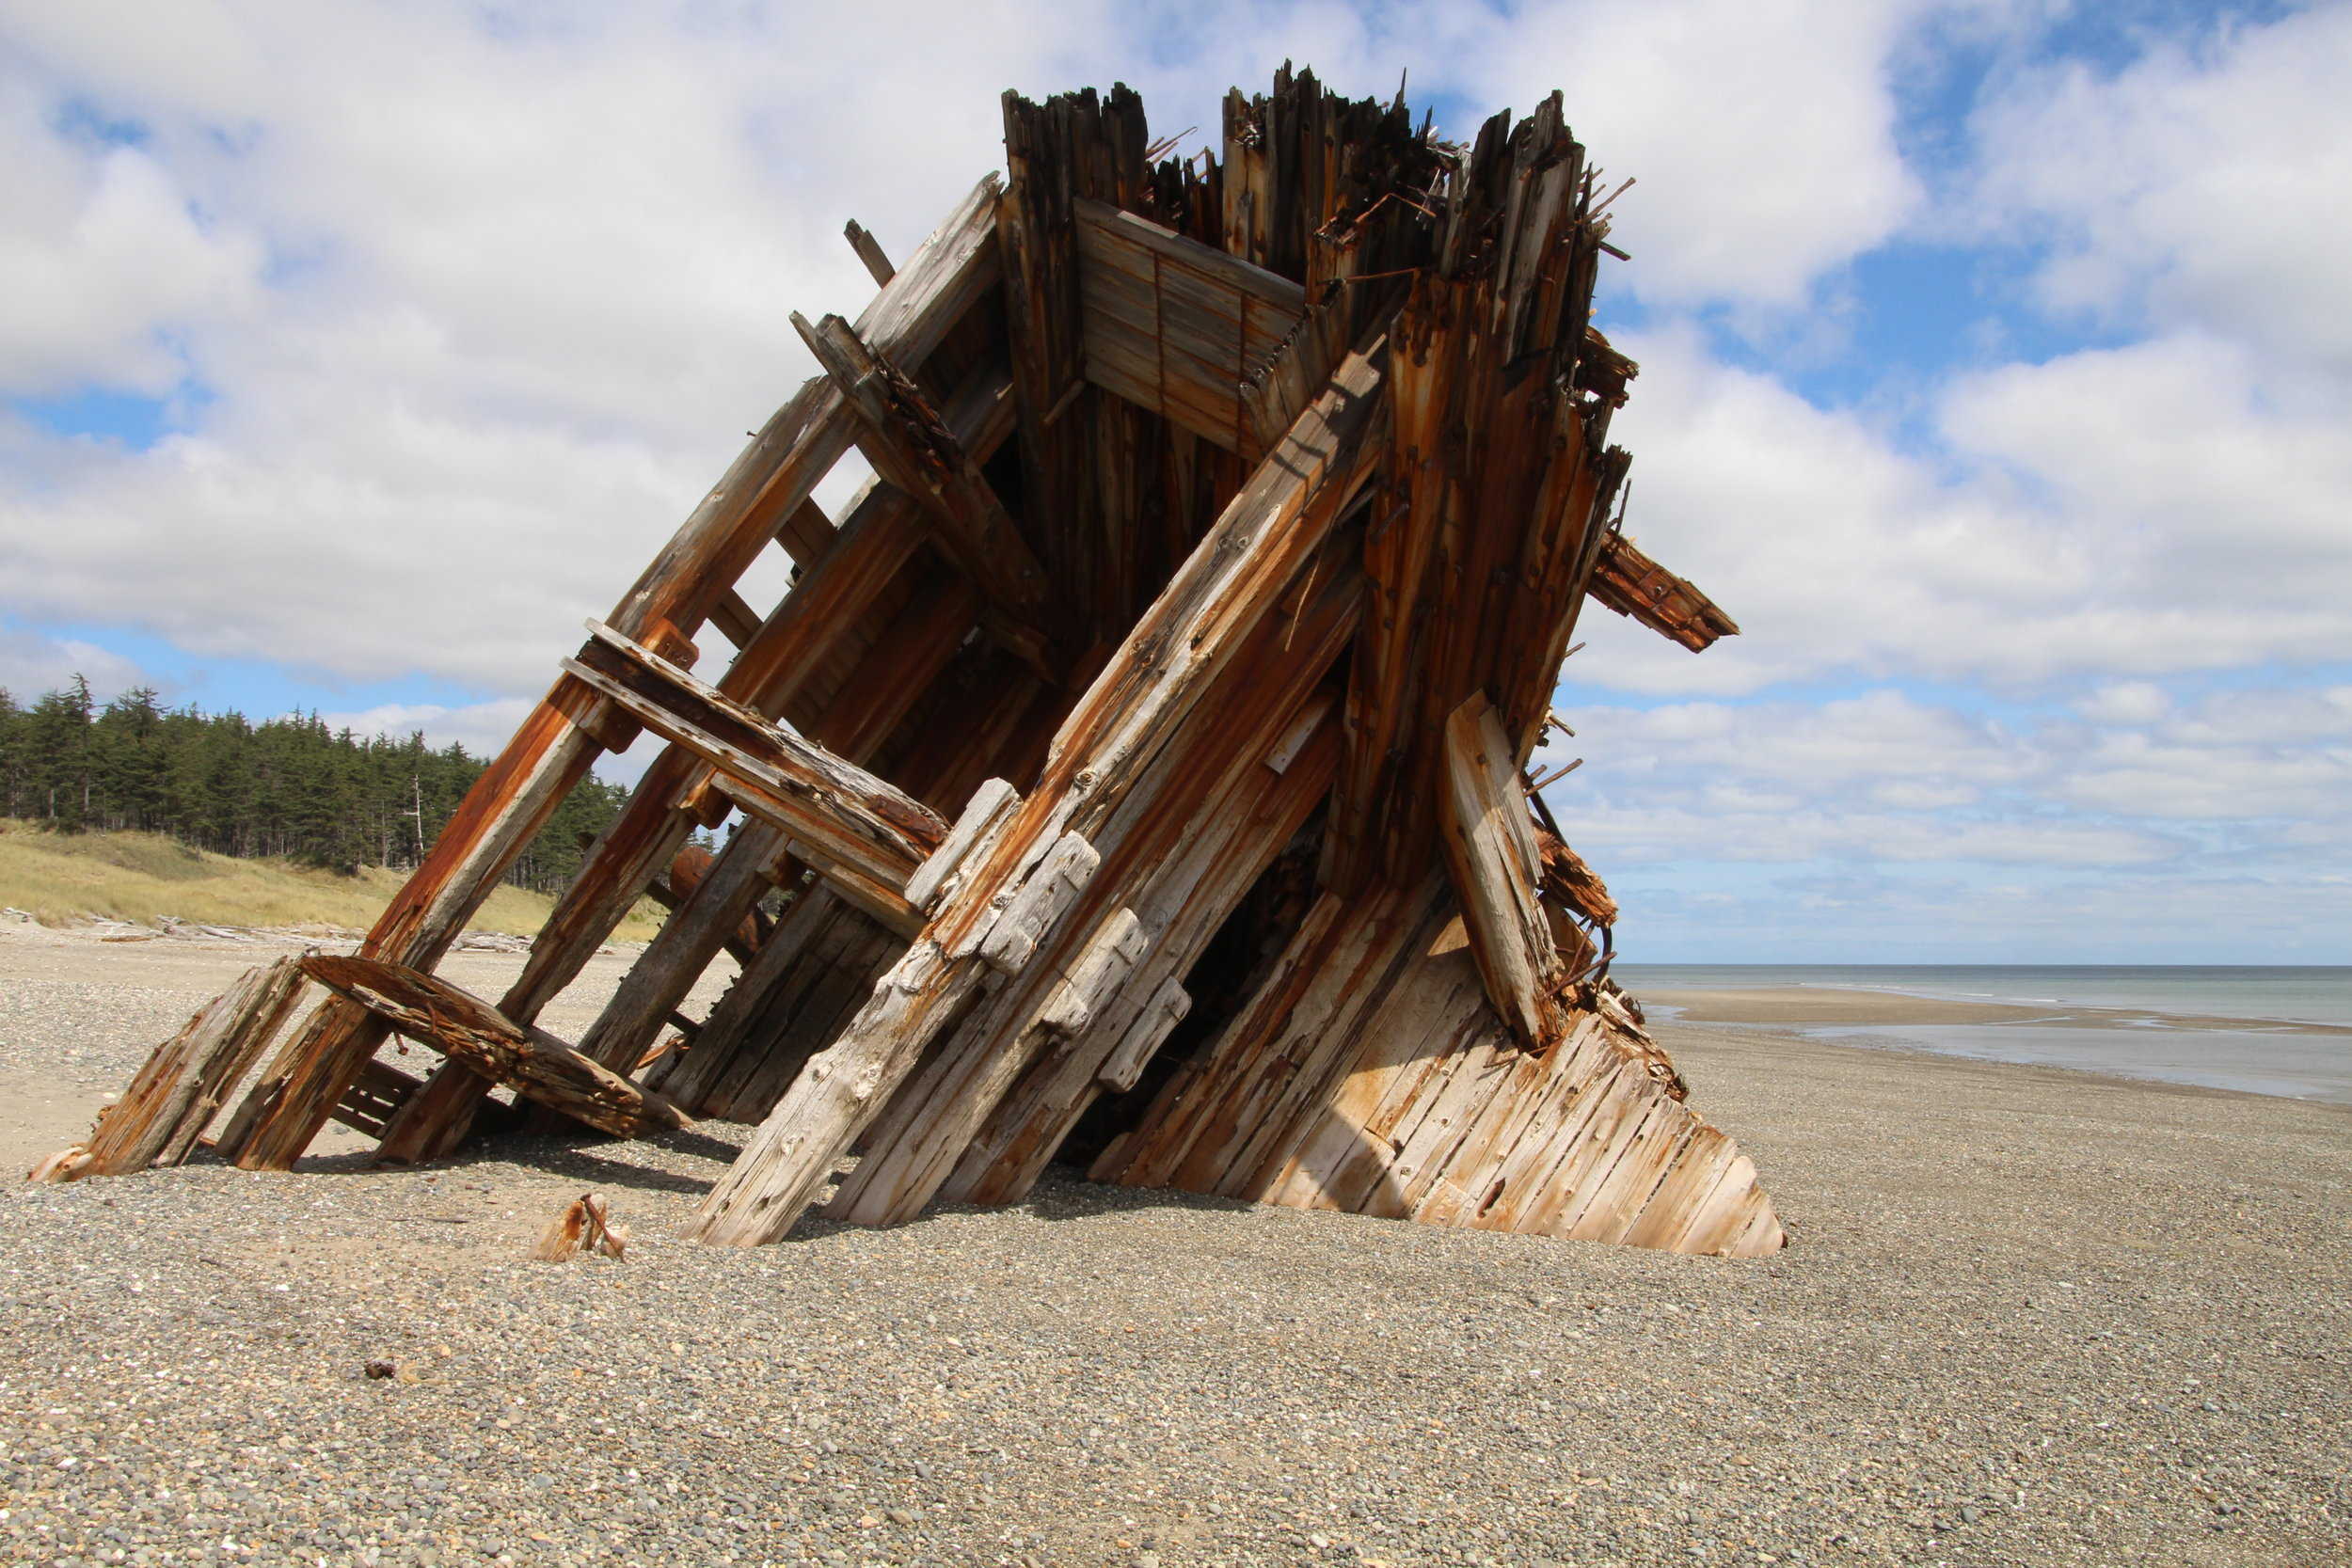 Haida Gwaii - Shipwreck - Photo by Ken Kellett.JPG